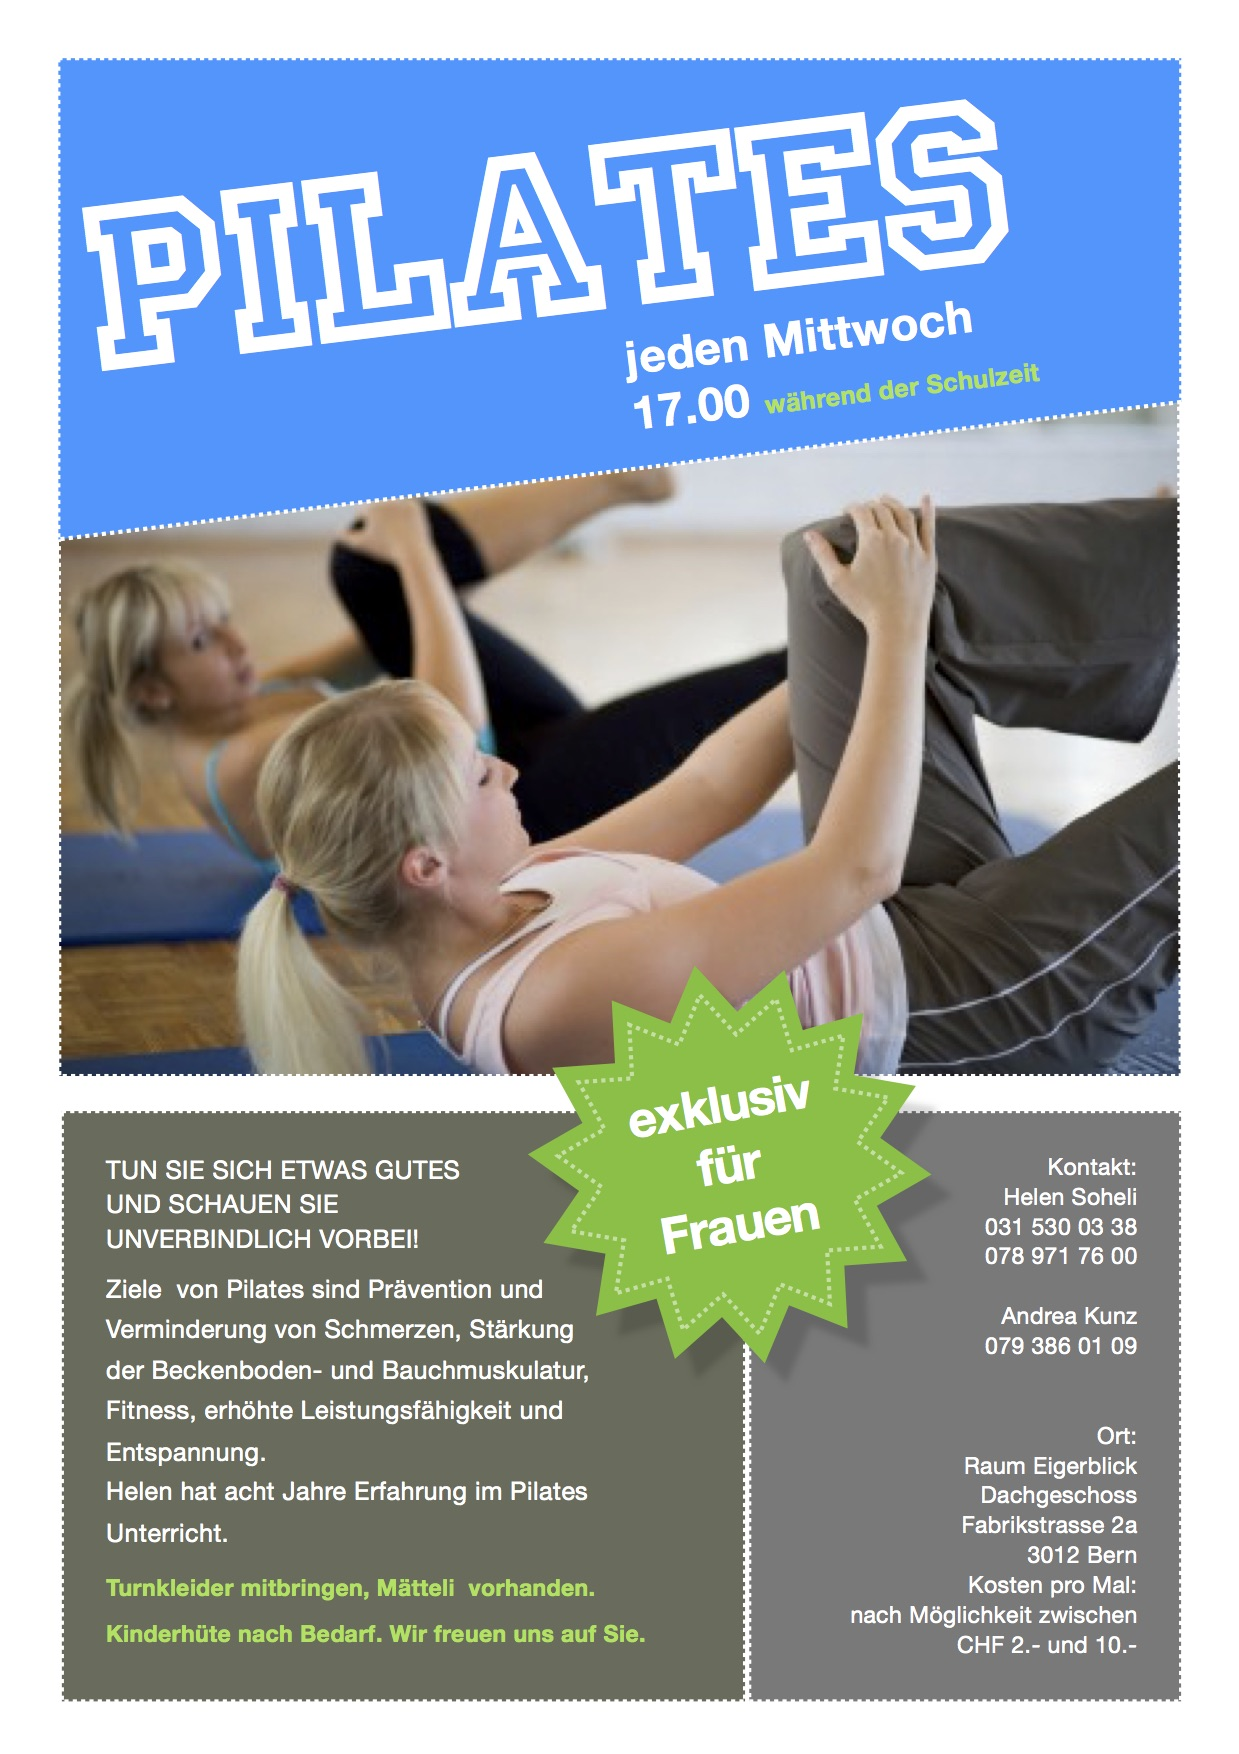 170118_Pilates_Flyer_frauen